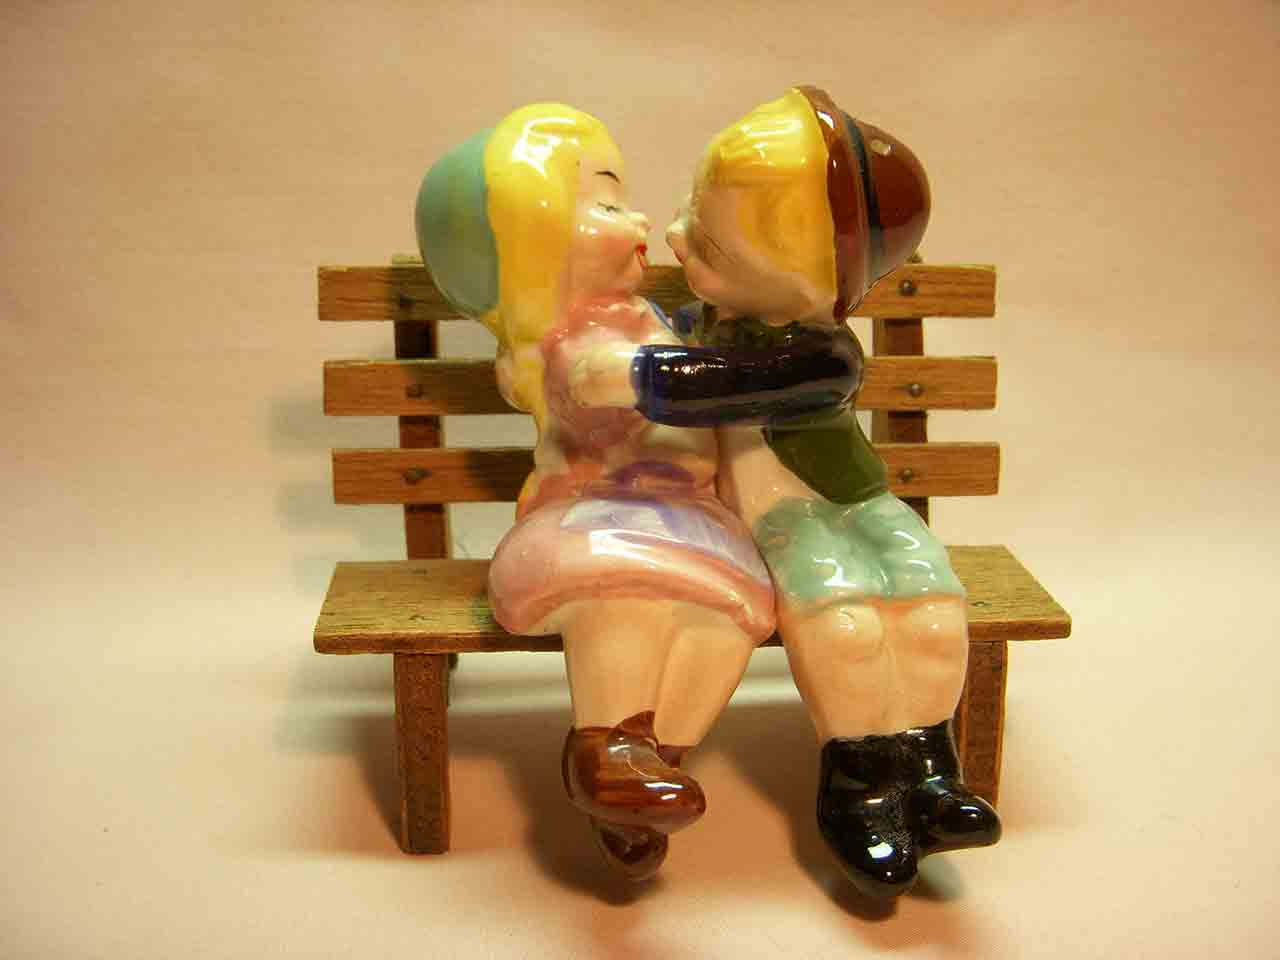 Boy and girl kissing sitting on wooden bench salt and pepper shaker